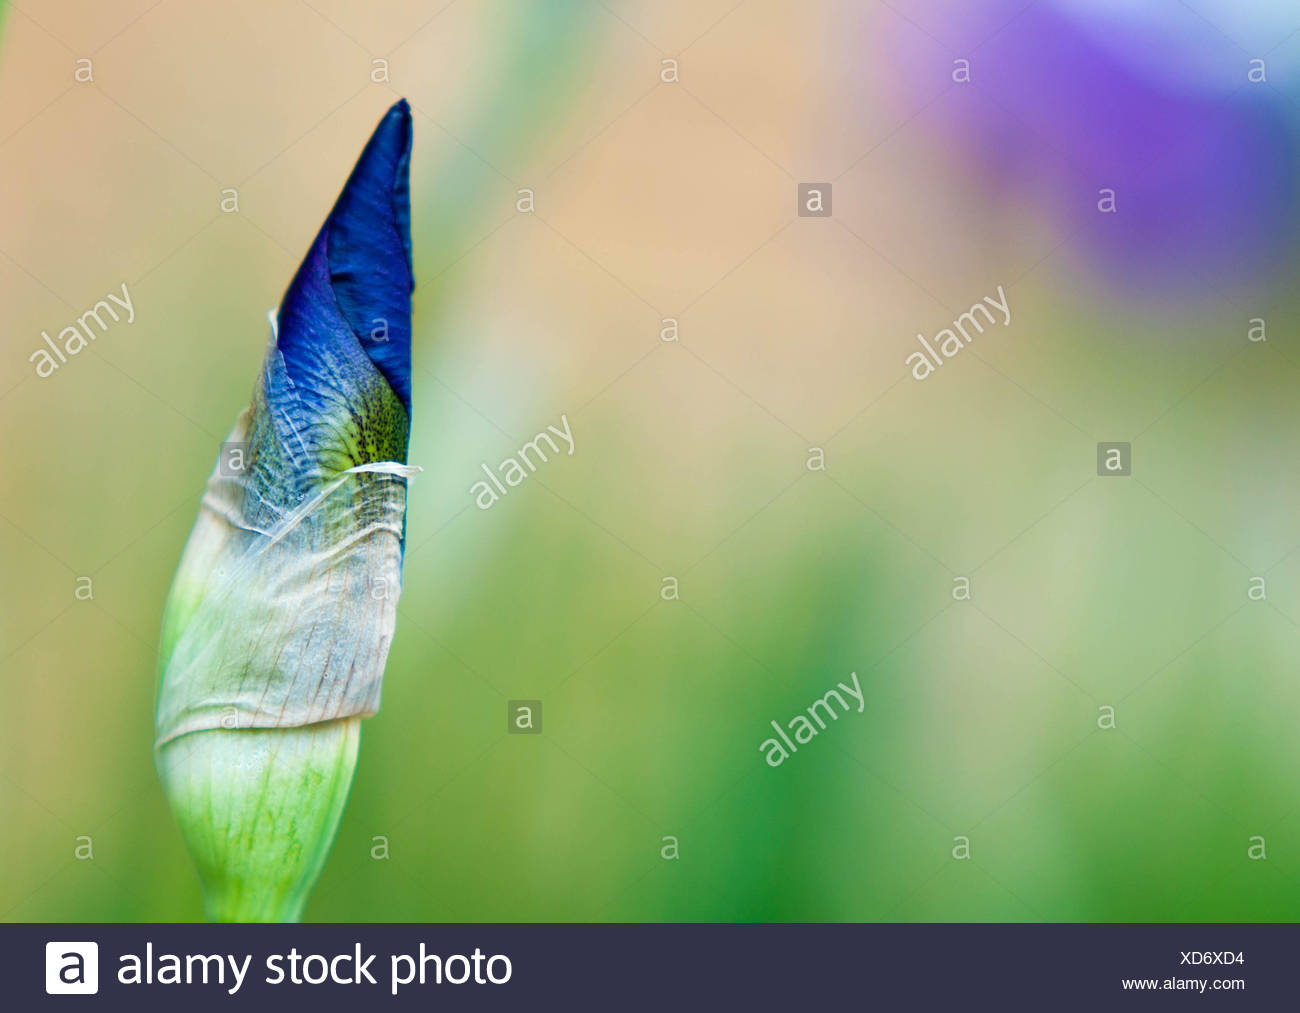 Close-up of Iris flower, Indiana, America, USA - Stock Image